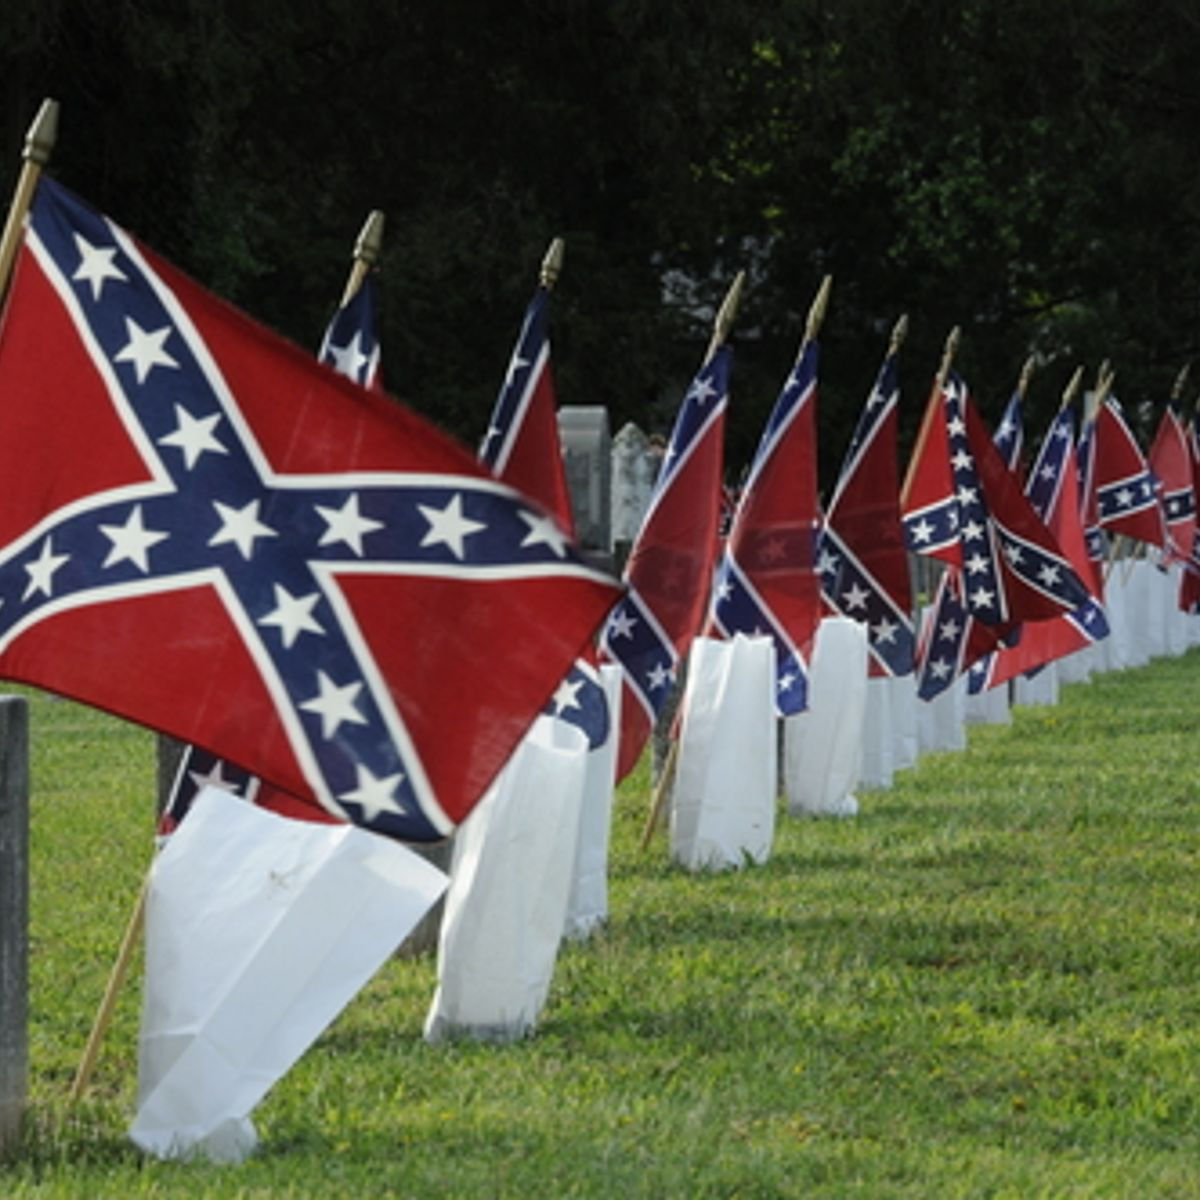 The 10 most inhumane laws courtesy of Southern Republicans